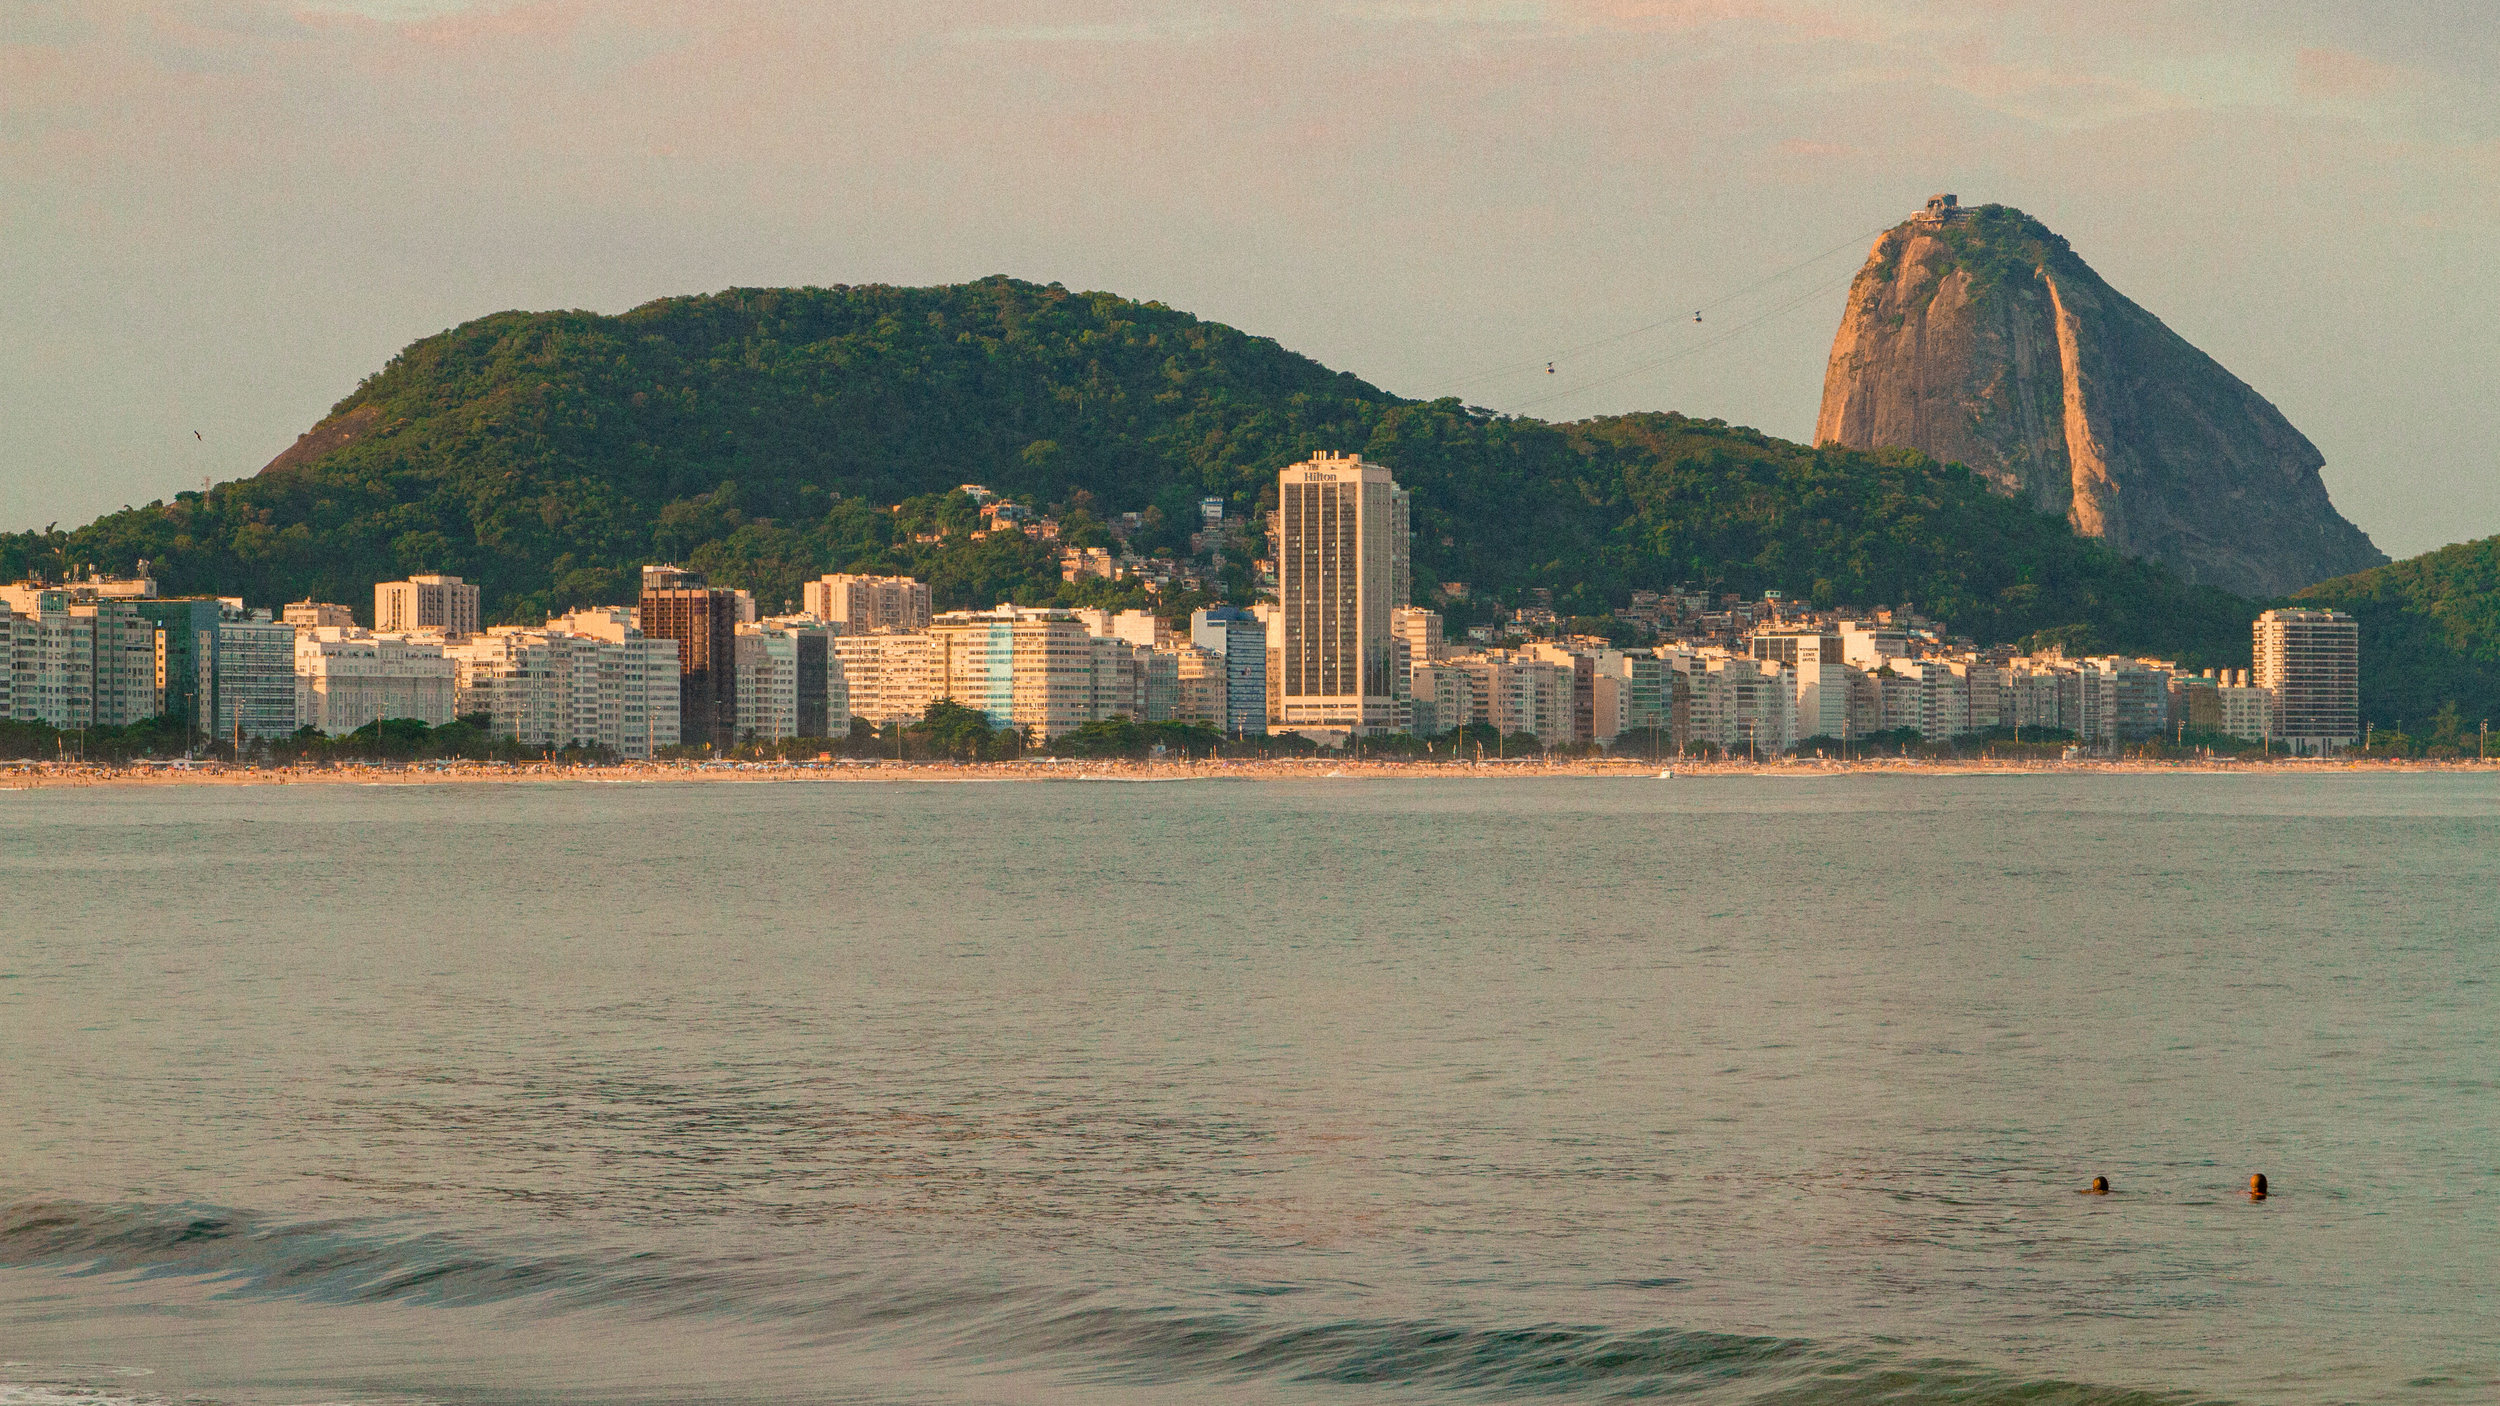 Copacabana Beach with Sugar Loaf in the distance